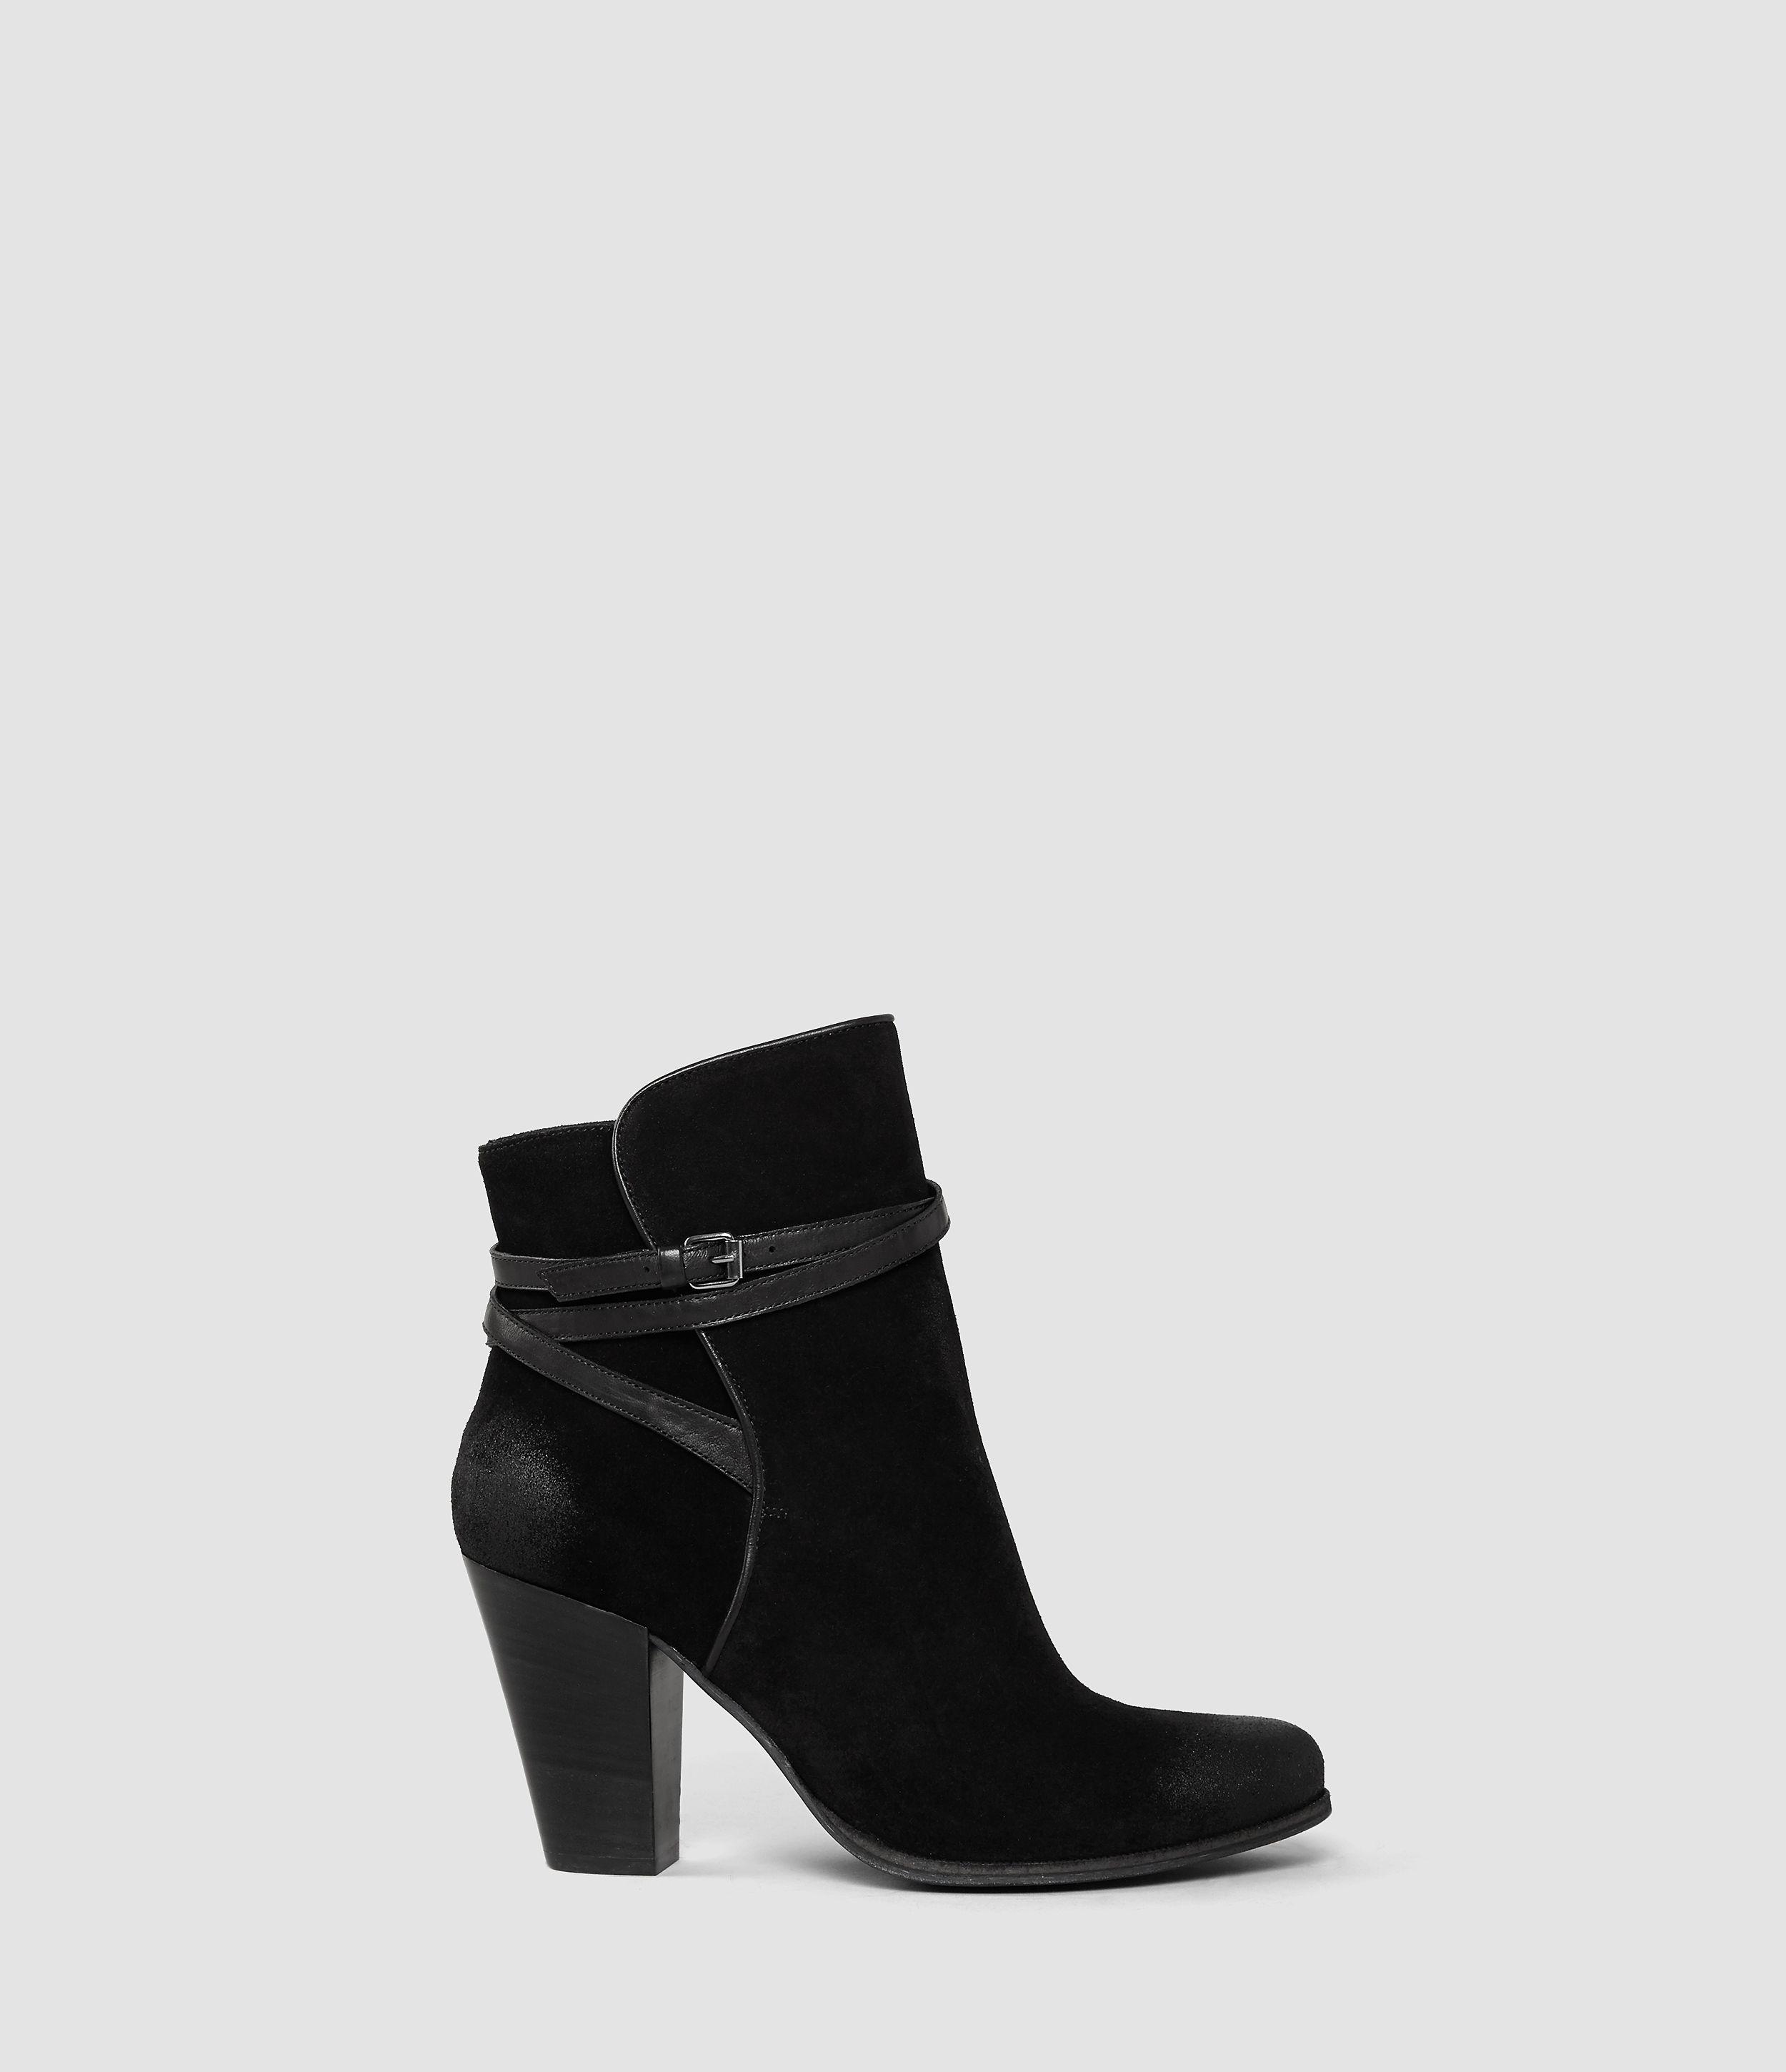 allsaints heel boot usa usa in black lyst